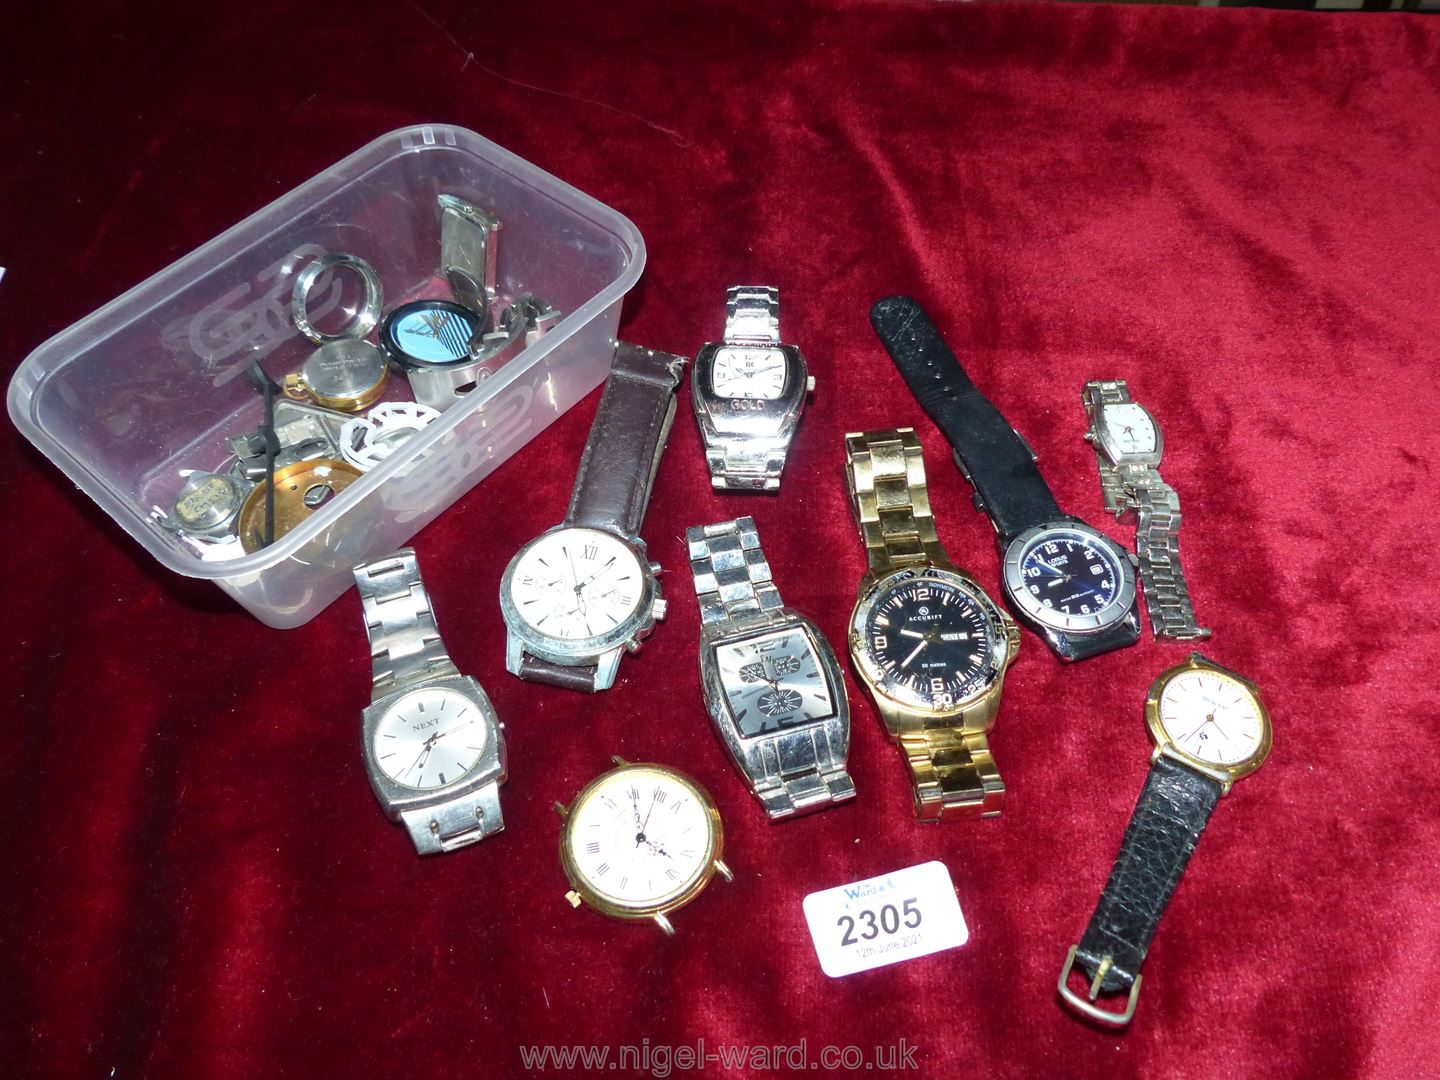 A carton of Gents watches including Next, Accurist, Lorus etc, all a/f.